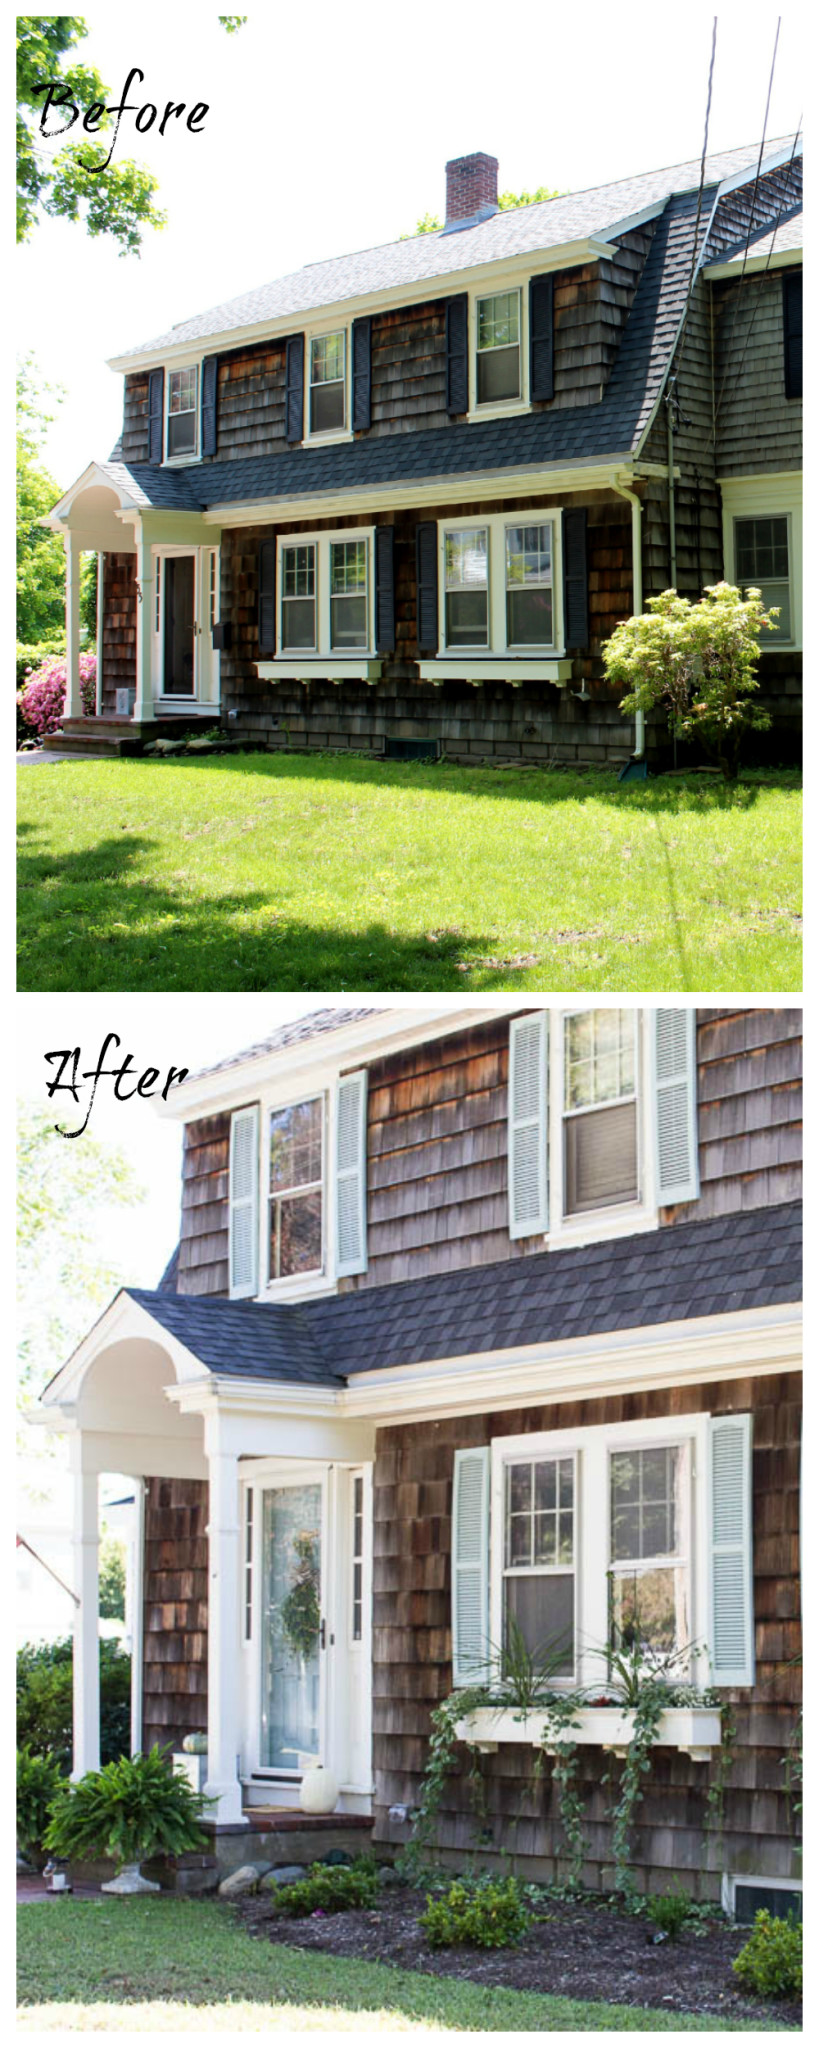 A before & after home tour celebrating three years in our home. It is incredible how much we've done in the past year. The exterior. www.findingsilverpennies.com